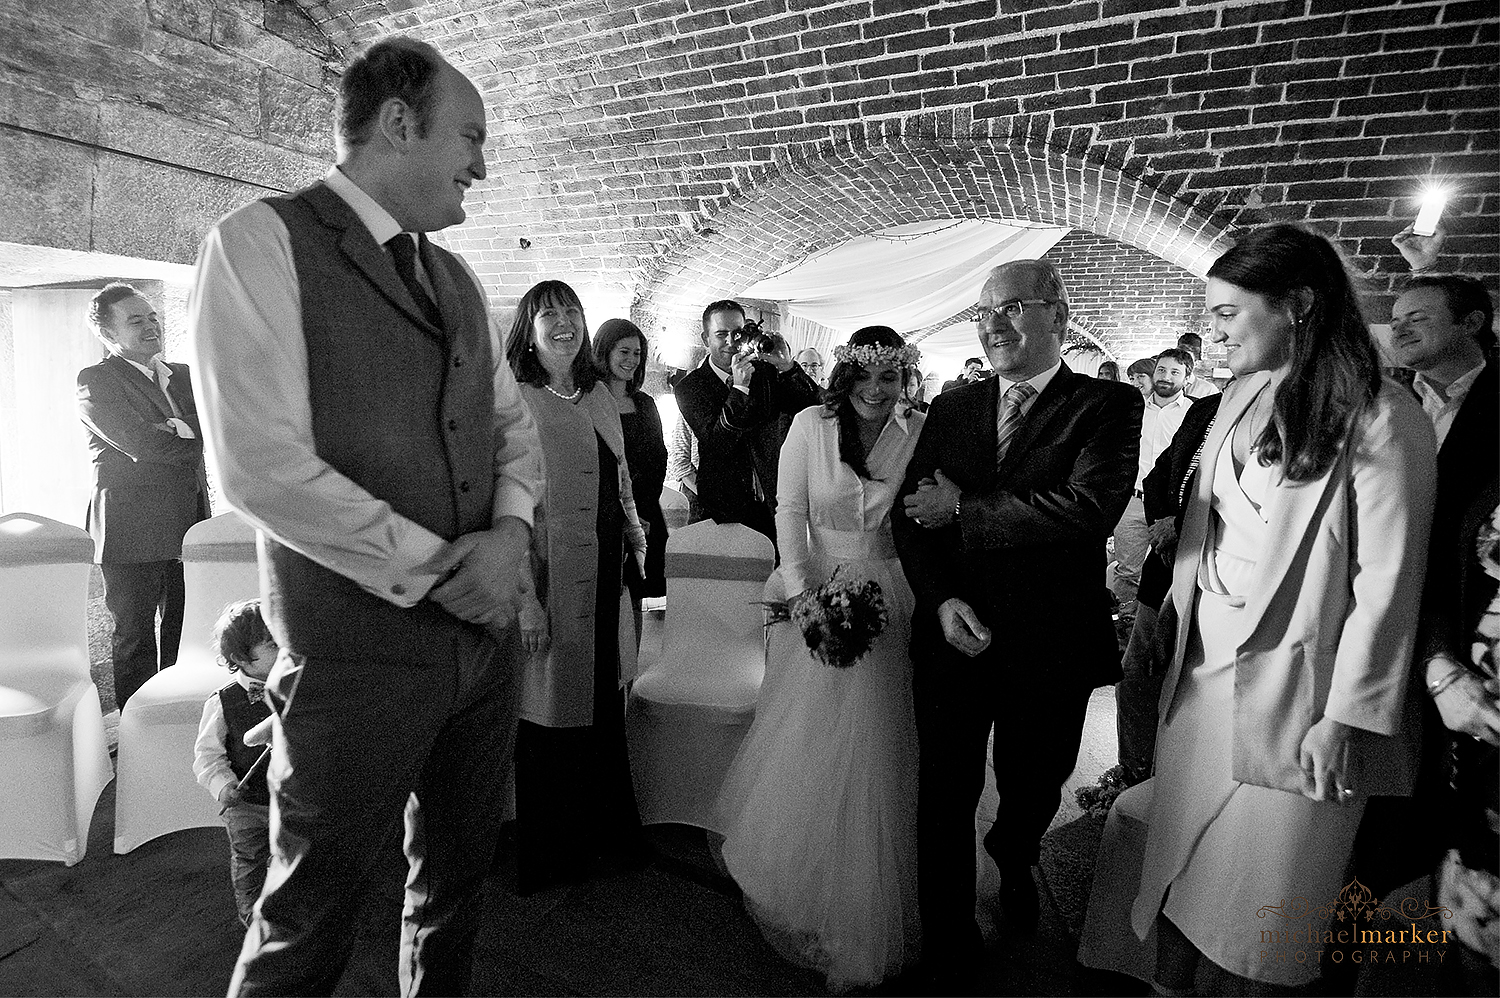 bride and groom's first look at Polhawn fort wedding in Cornwall